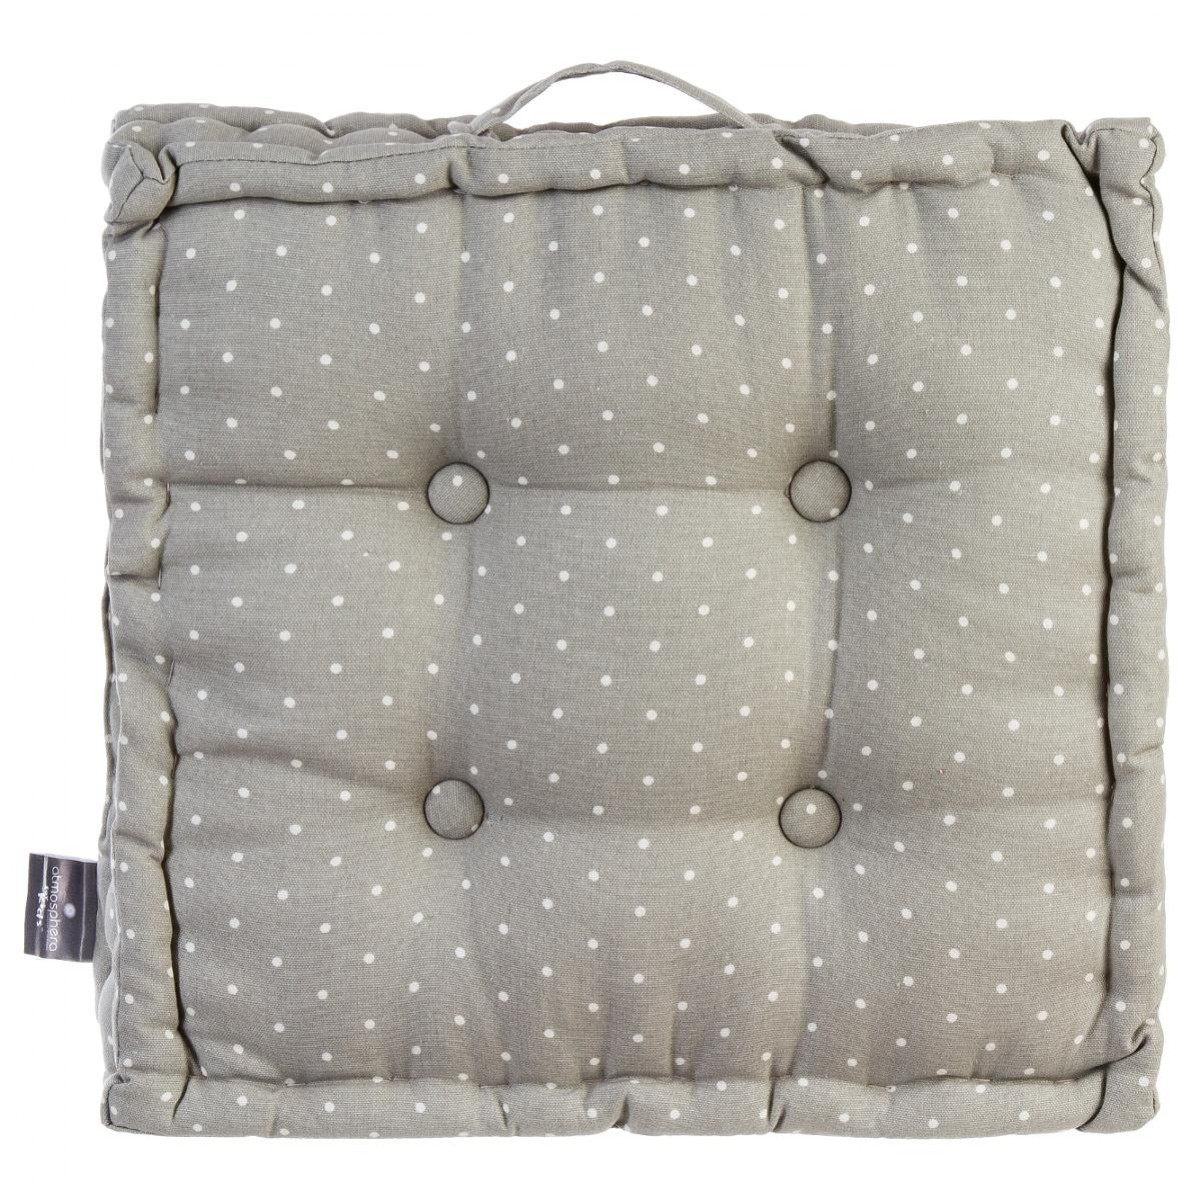 coussin de sol gris 40x40x8cm les douces nuits de ma linge de maison. Black Bedroom Furniture Sets. Home Design Ideas